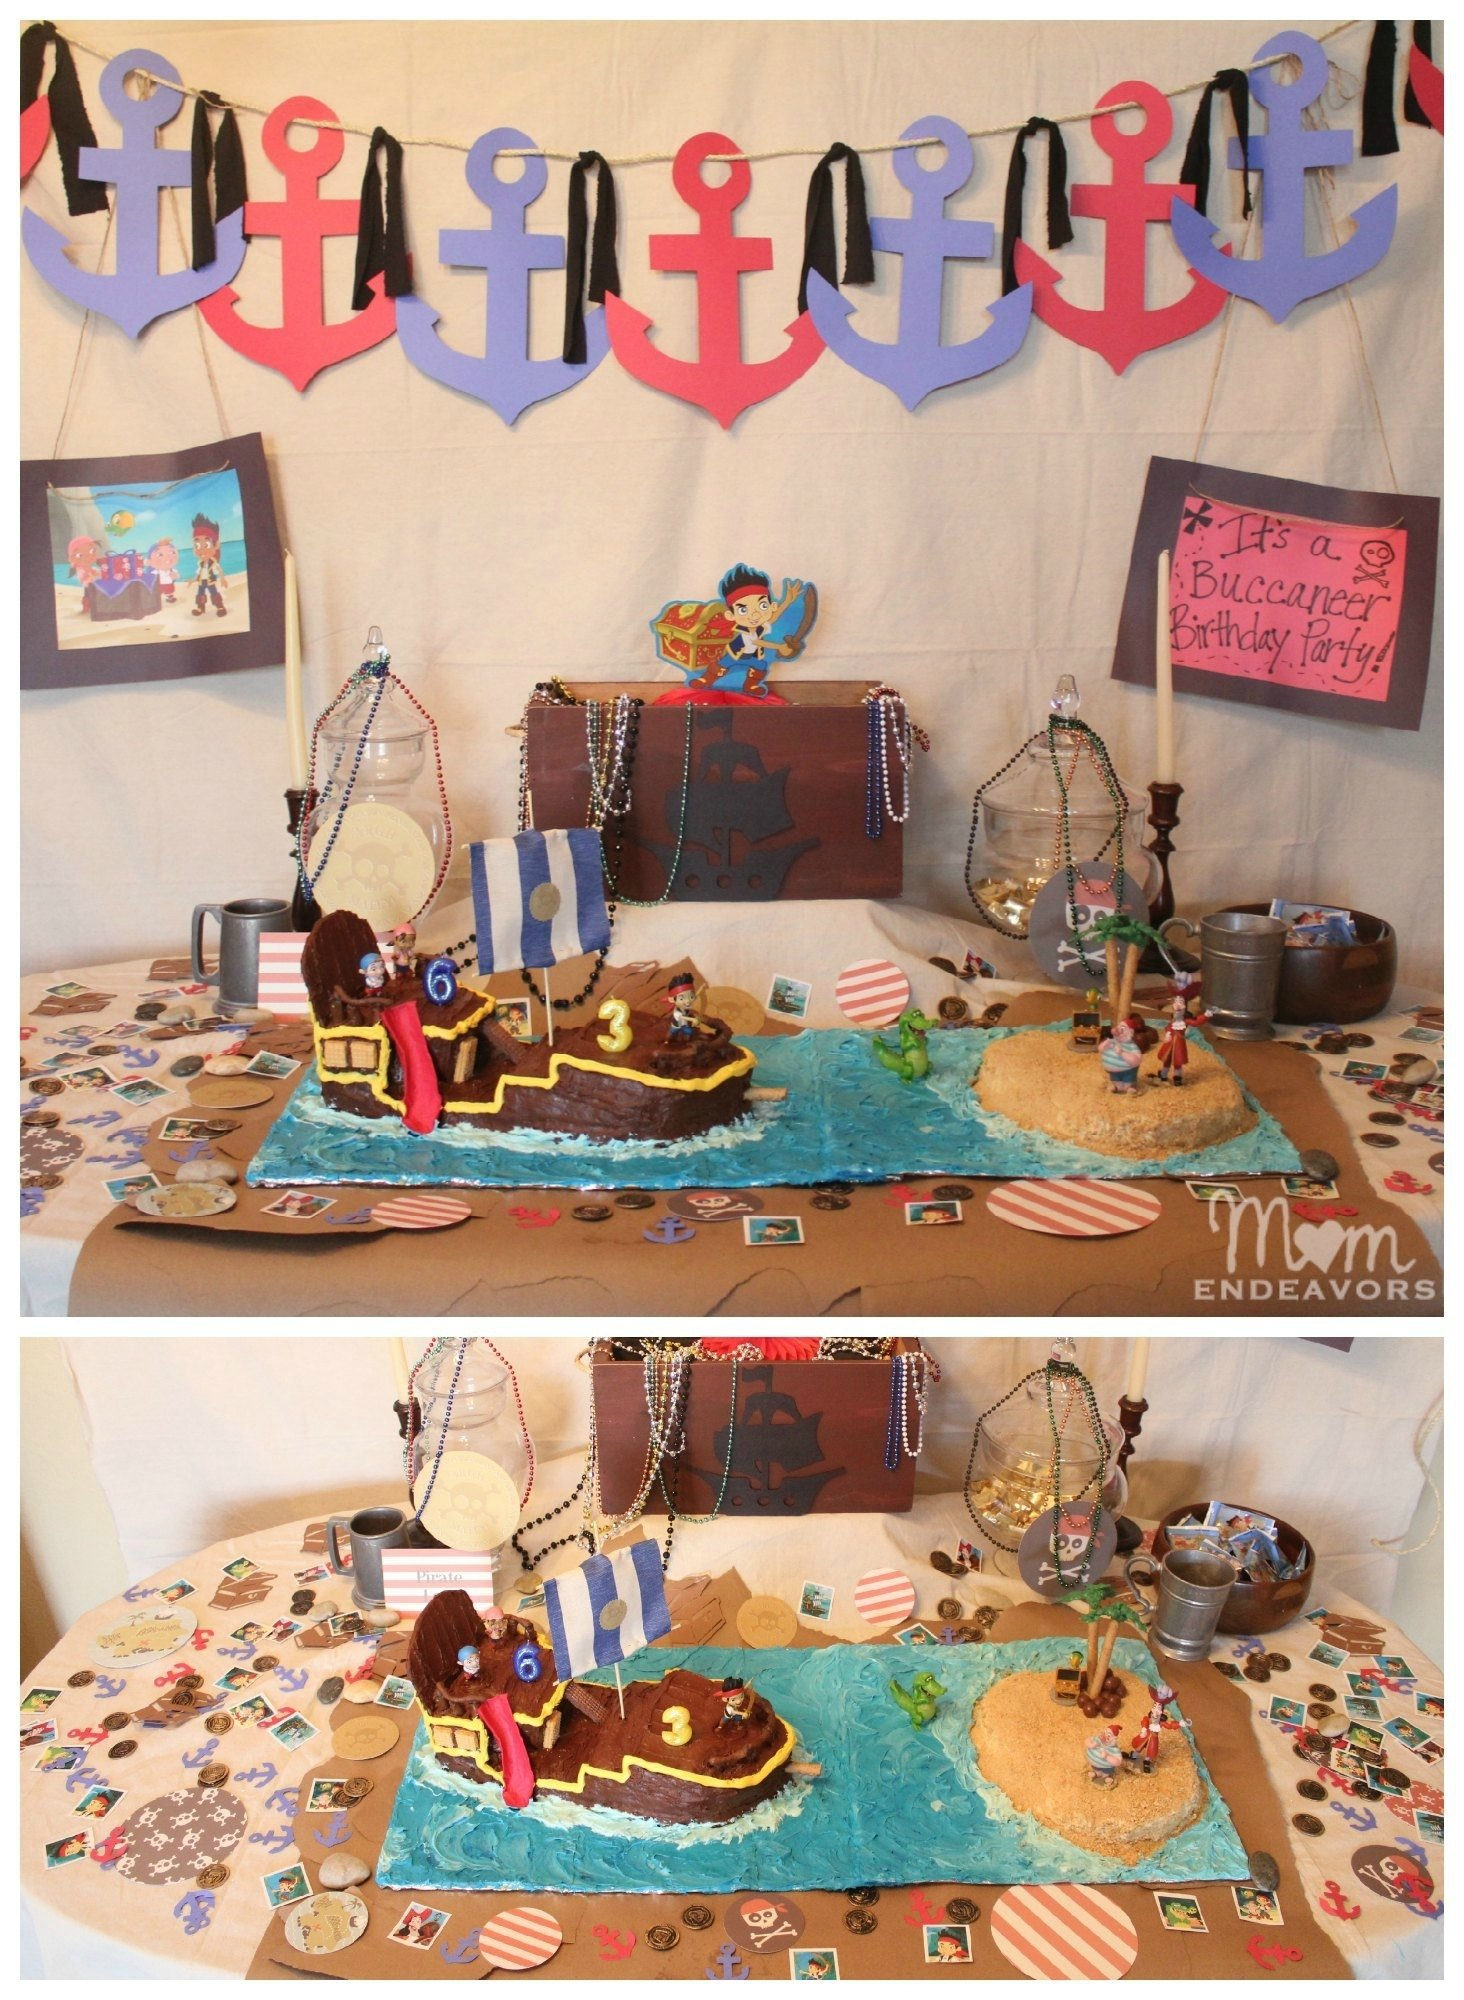 10 Ideal Jake And The Neverland Pirate Birthday Party Ideas jake and the never land pirates birthday party 3 2020